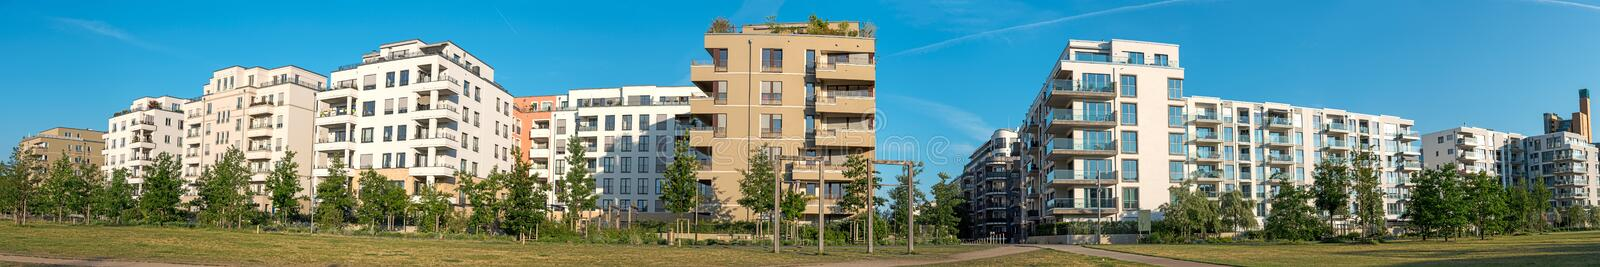 Panorama of a housing development area stock photography